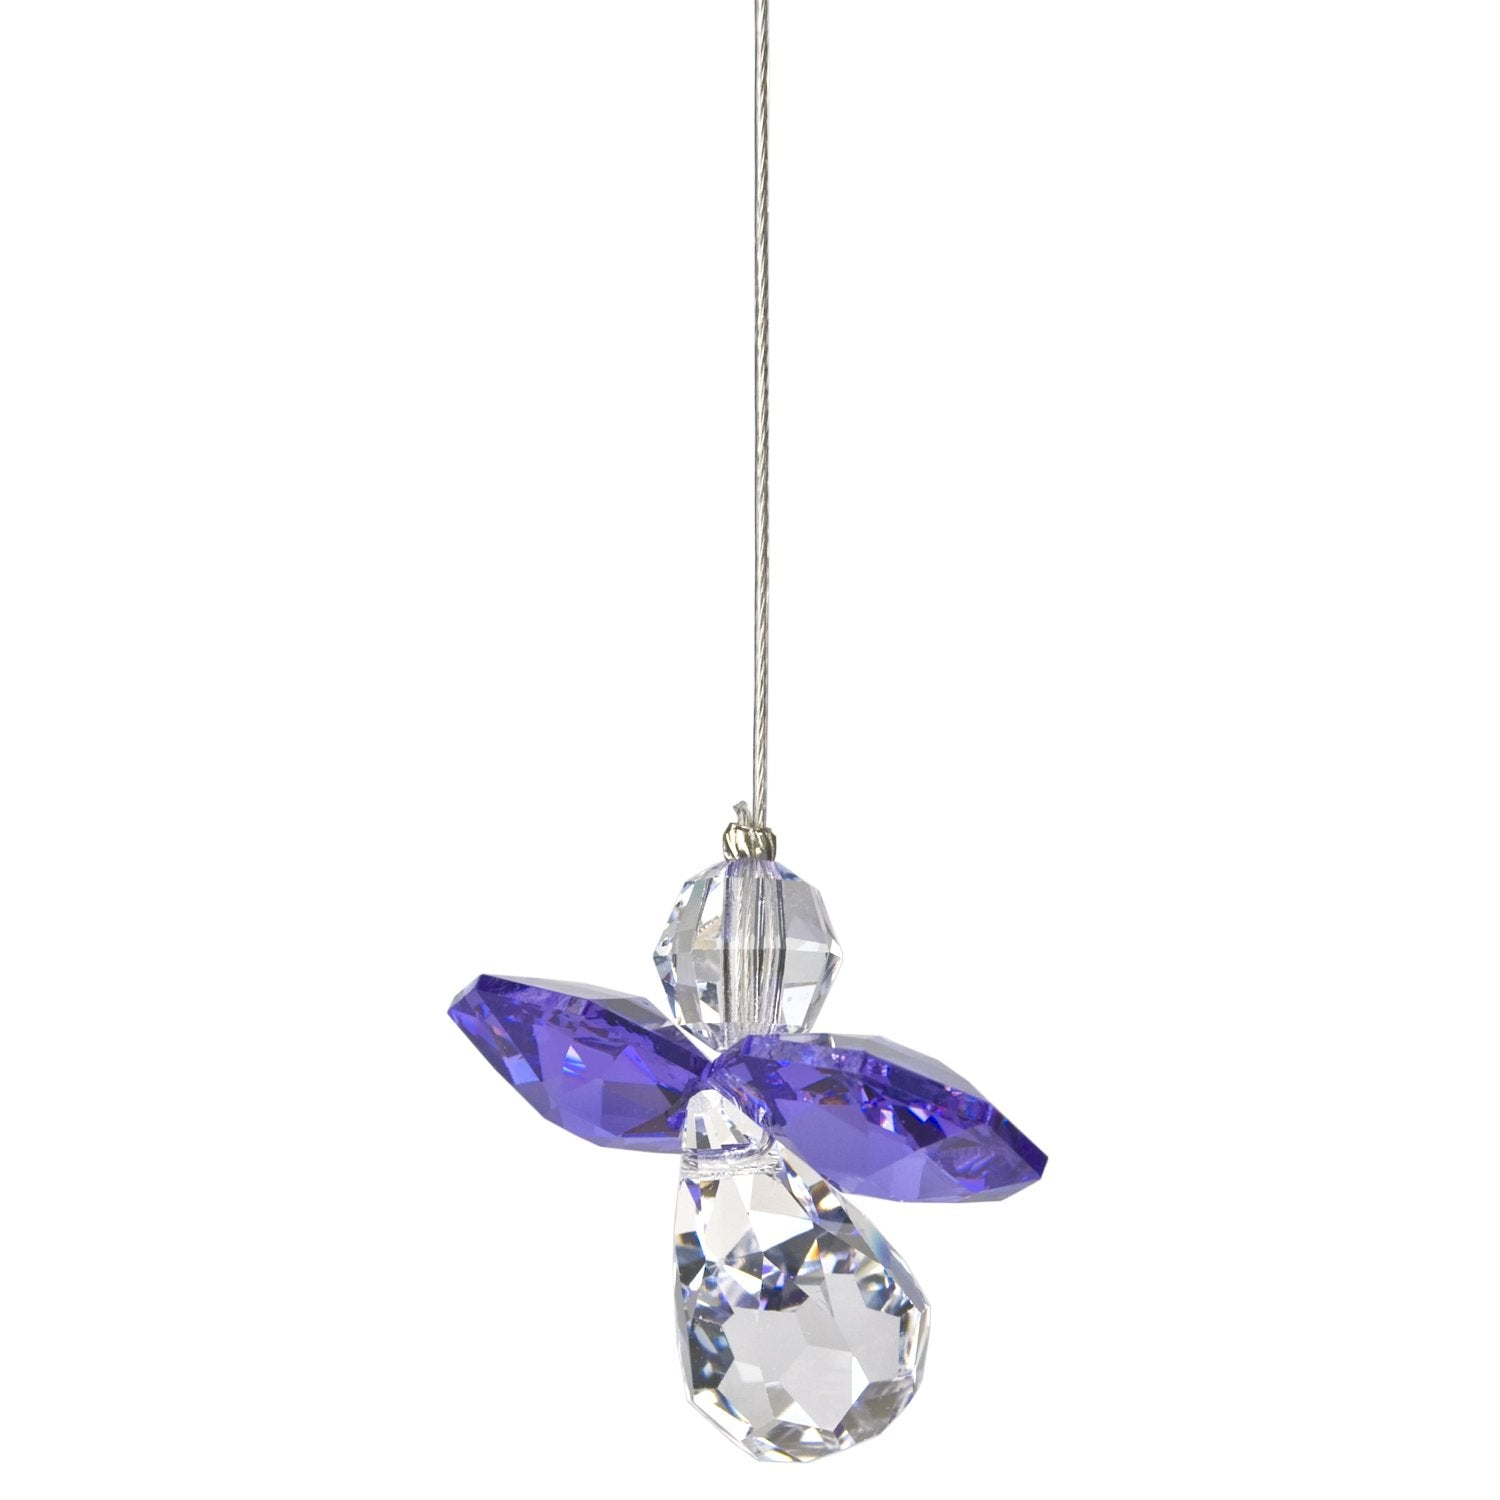 Crystal Guardian Angel Suncatcher - Amethyst (February) alternate product image